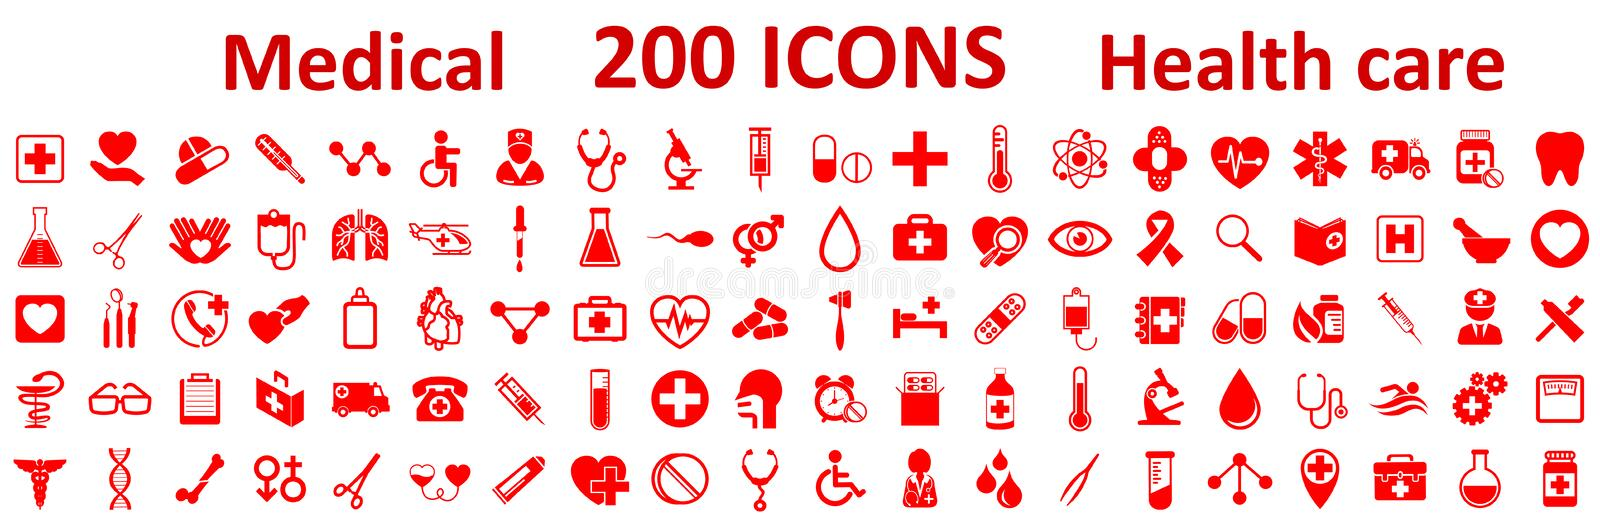 Set Medecine and Health flat icons. Collection health care medical icons royalty free illustration